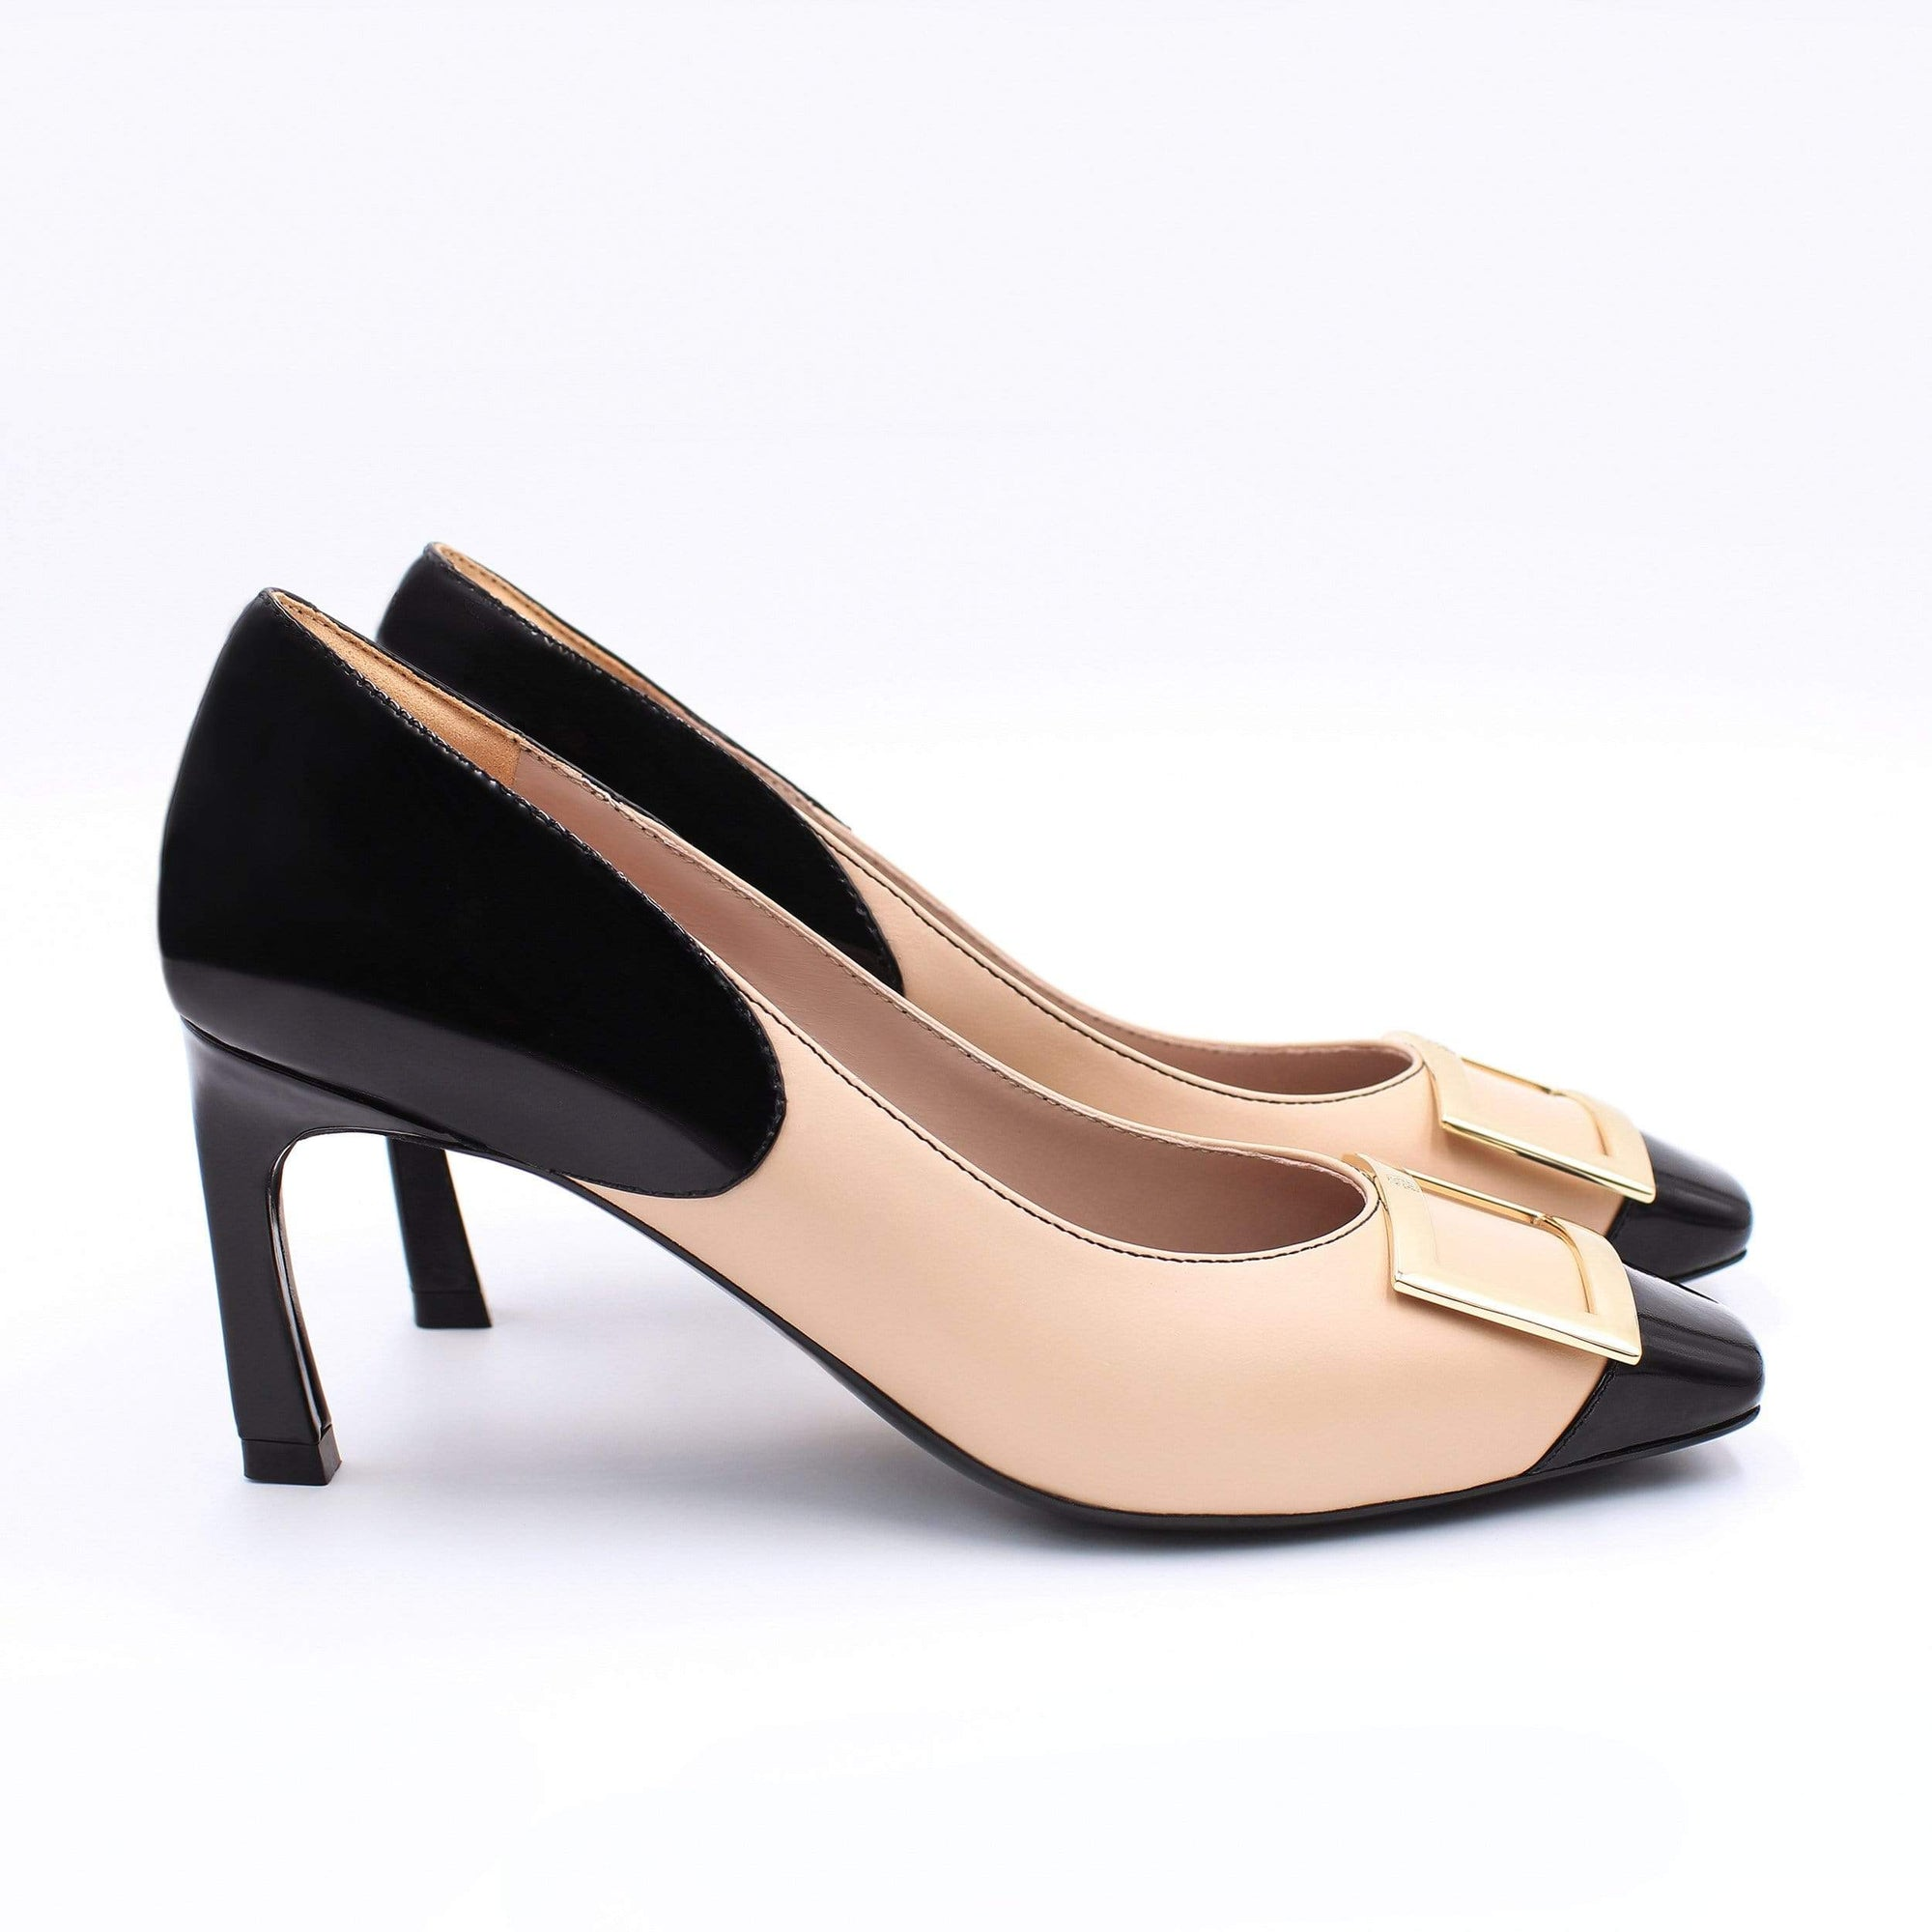 HOPE ROSA Pumps GRACE PUMP - NUDE/BLACK PATENT